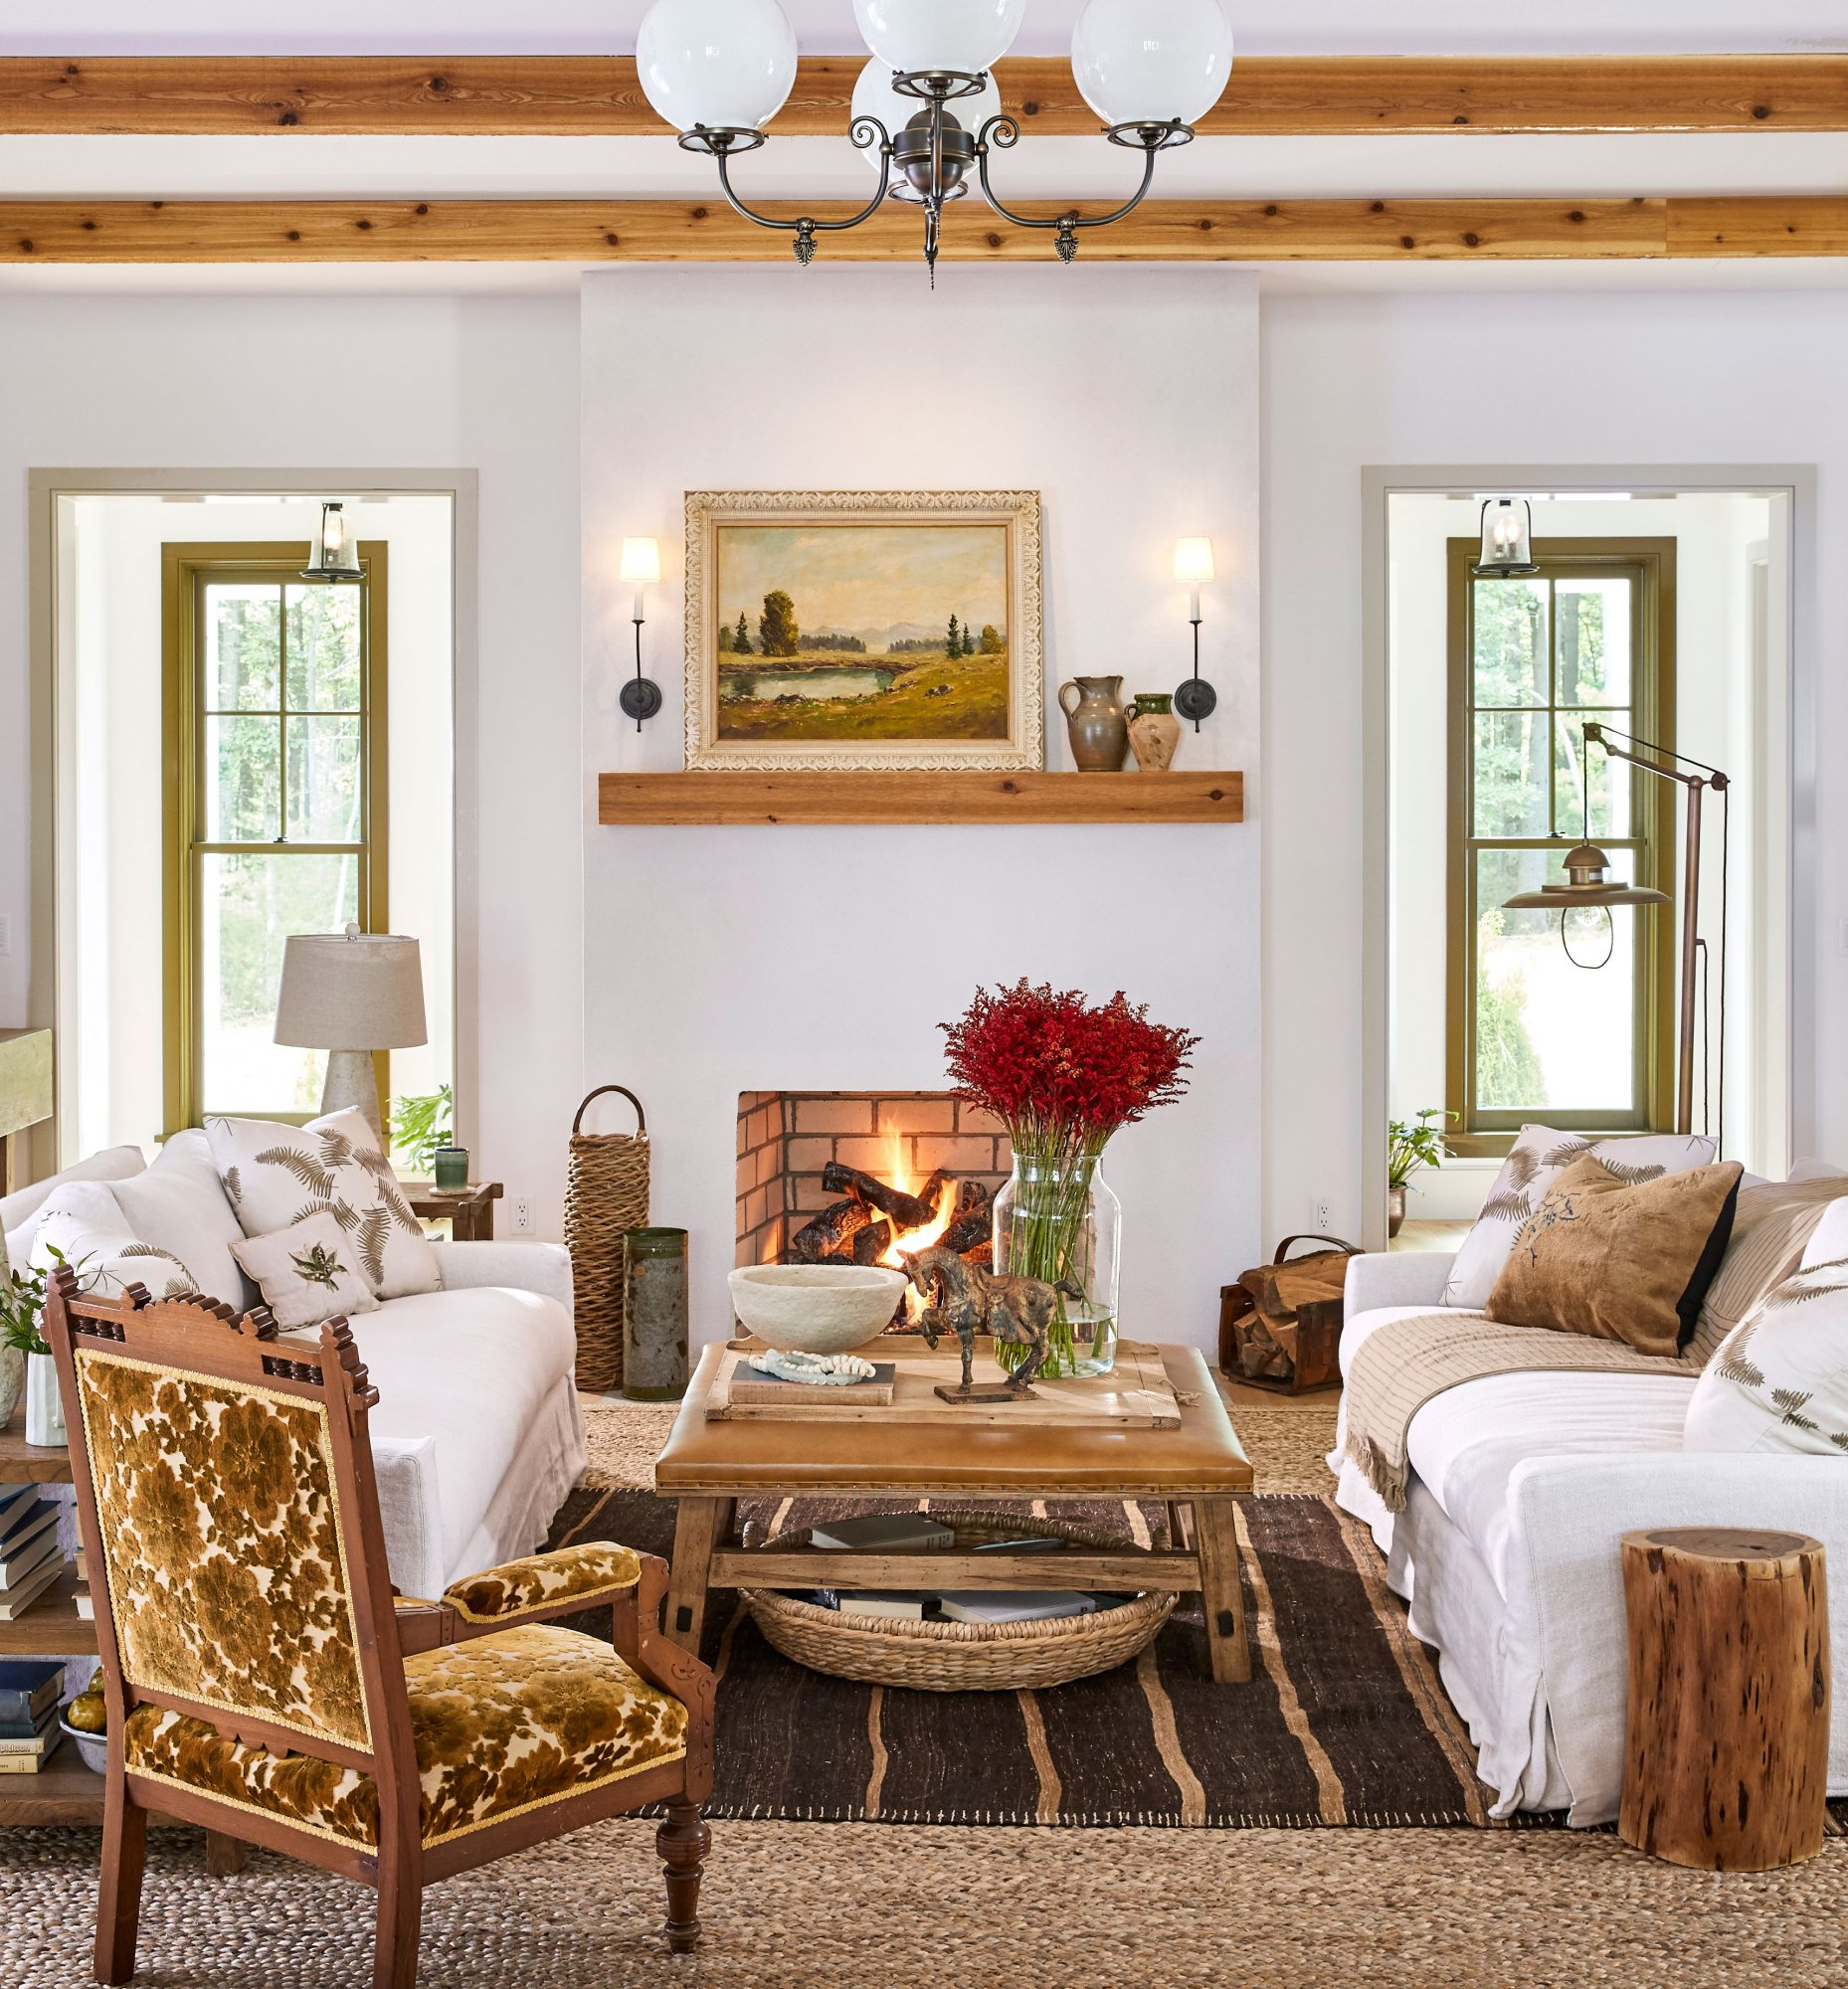 2020 Idea House Living Room with Wood Beams and Fireplace